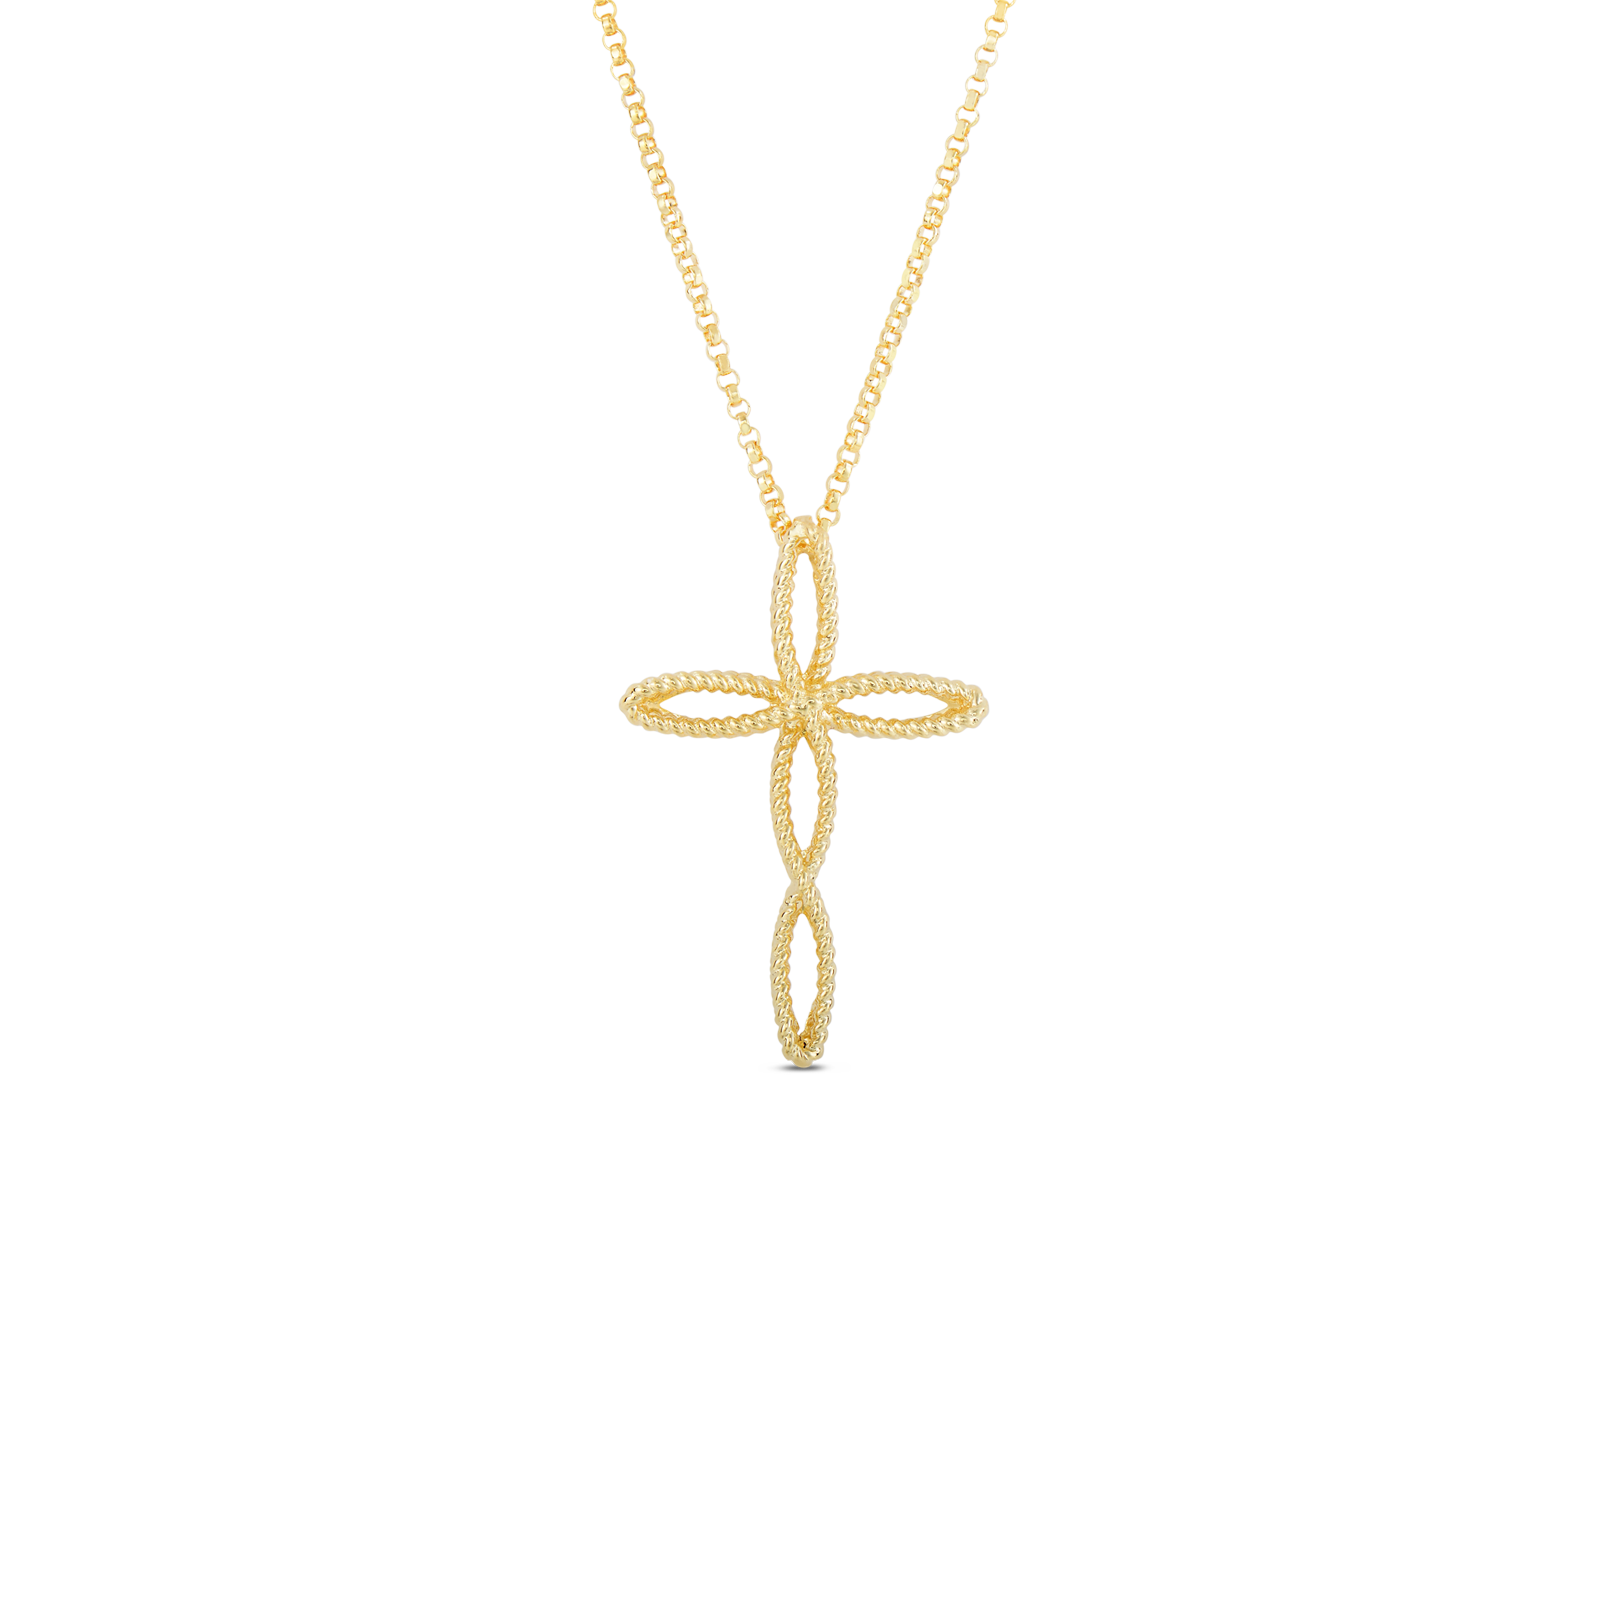 Italian Gold Cross Pendant by Roberto Coin in New Barocco